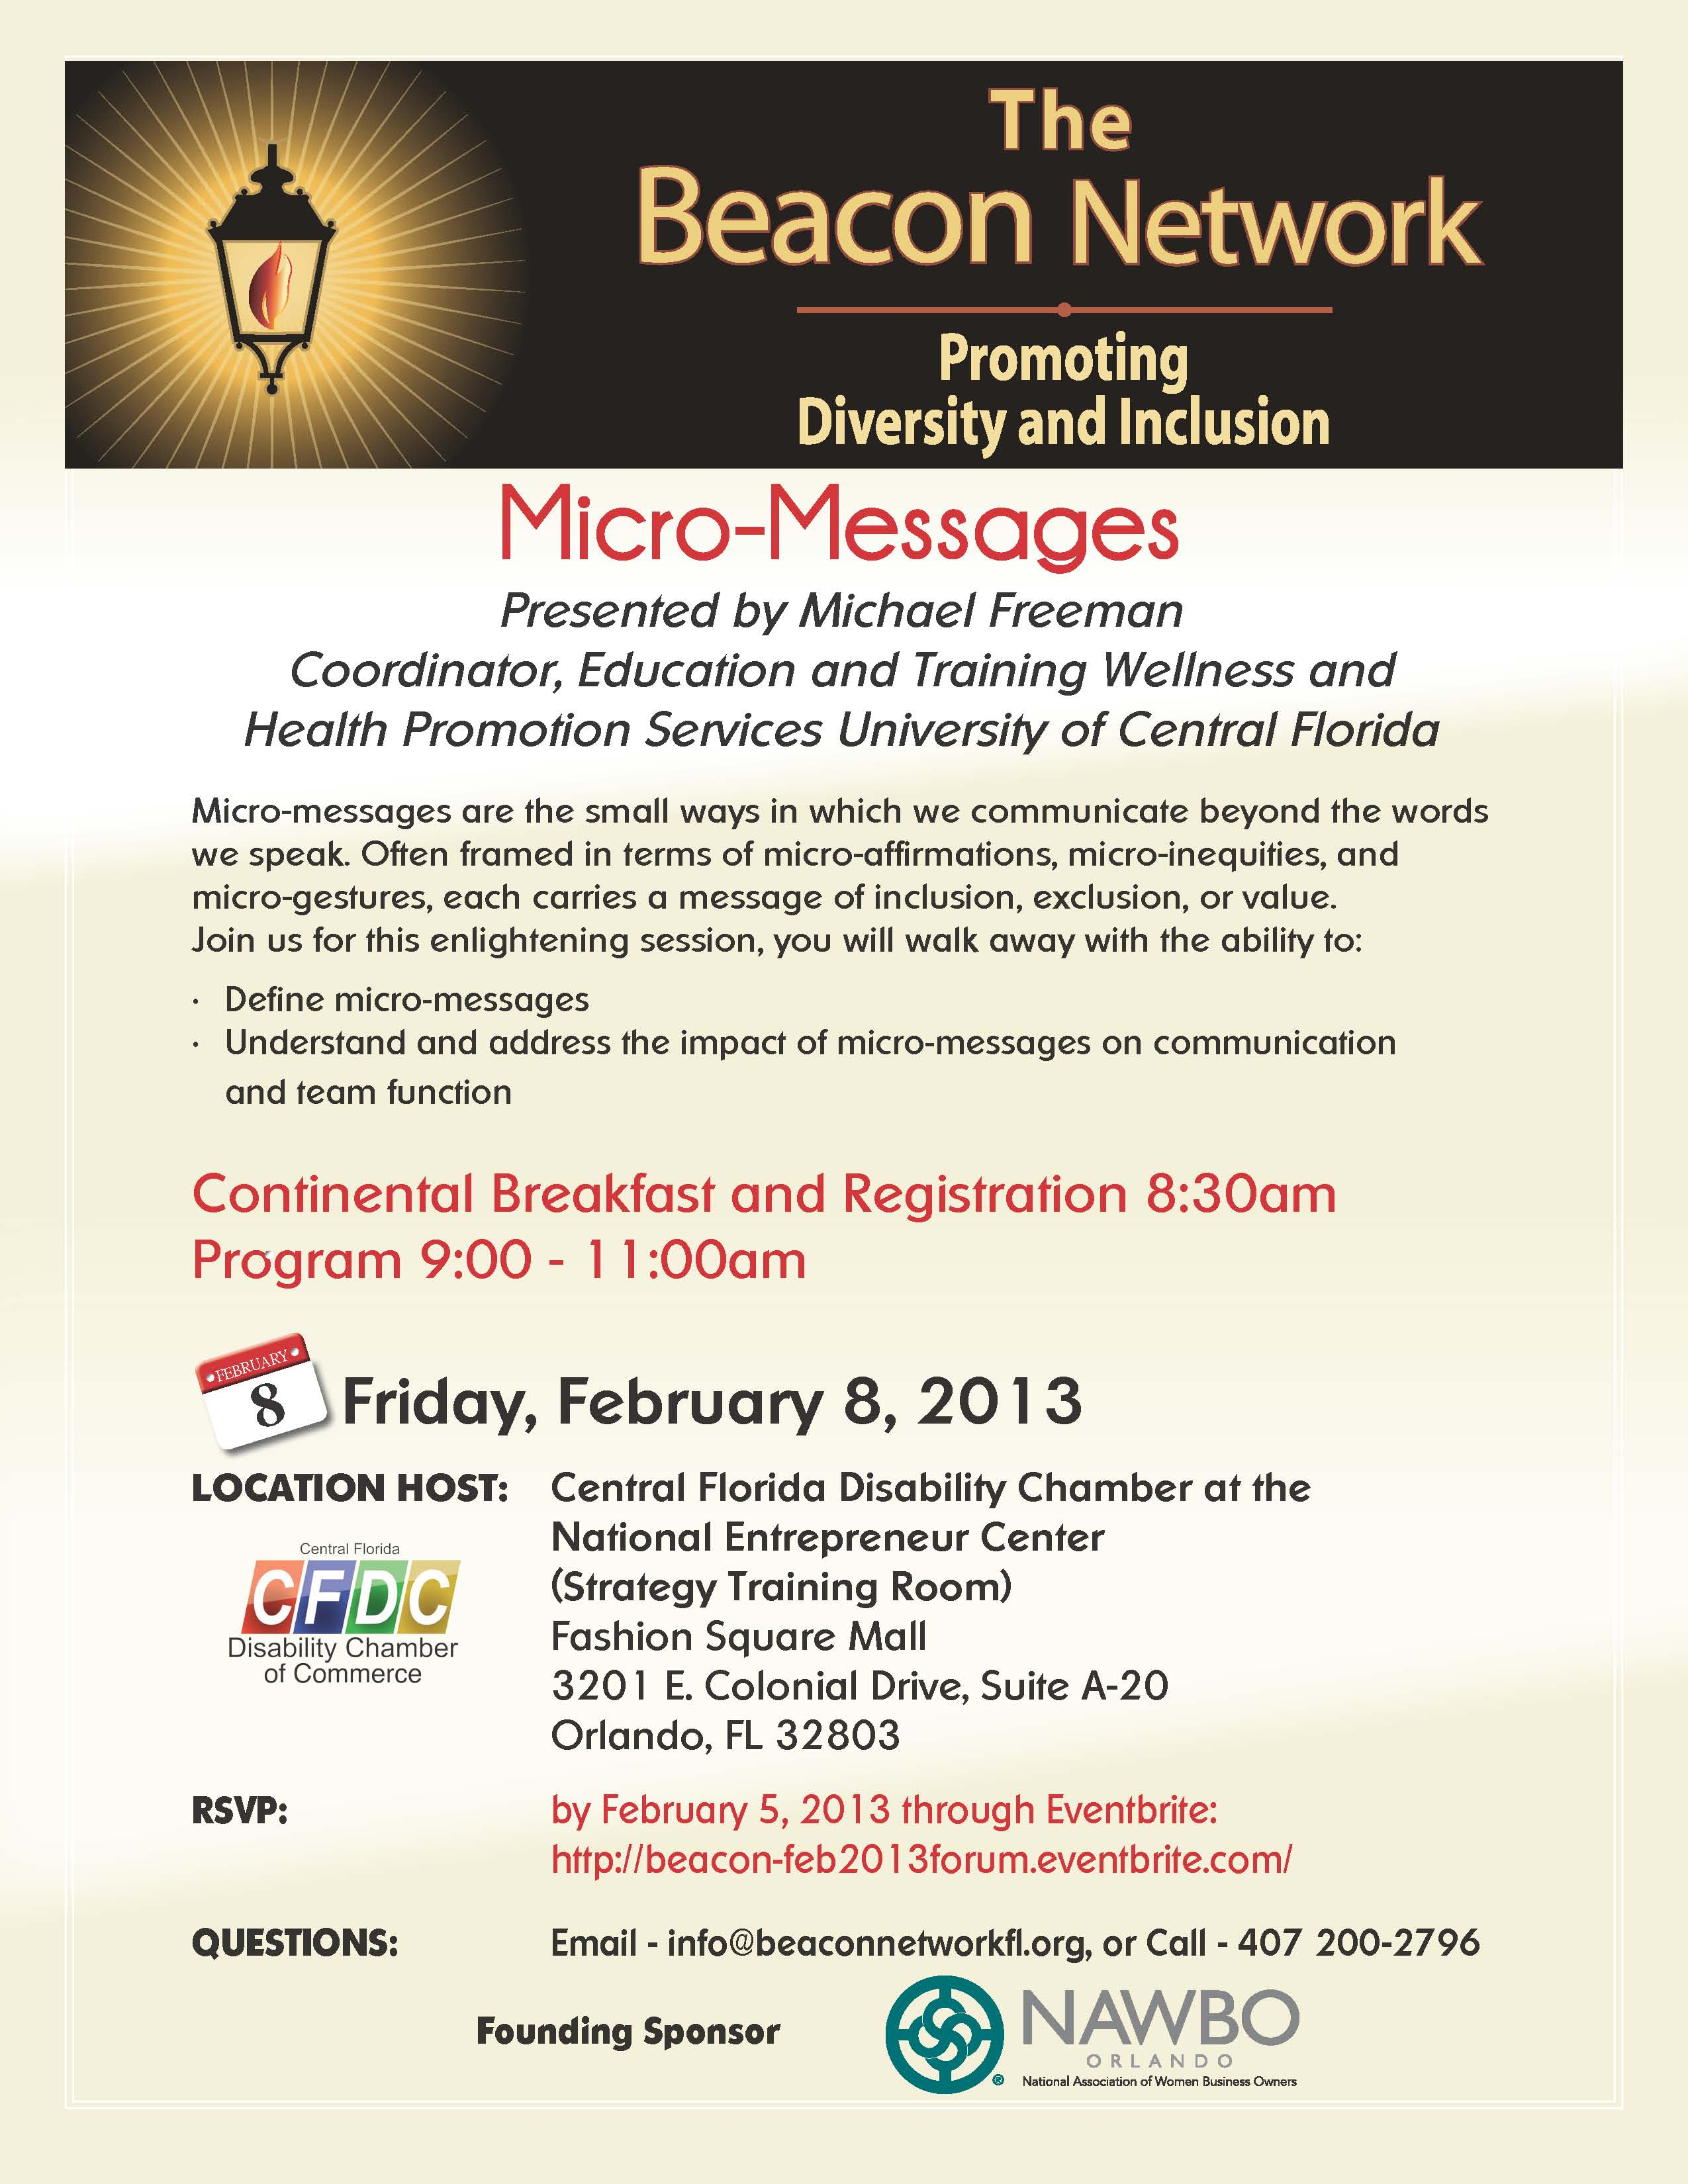 Beacon Forum February 8, 2013 Flyer Image